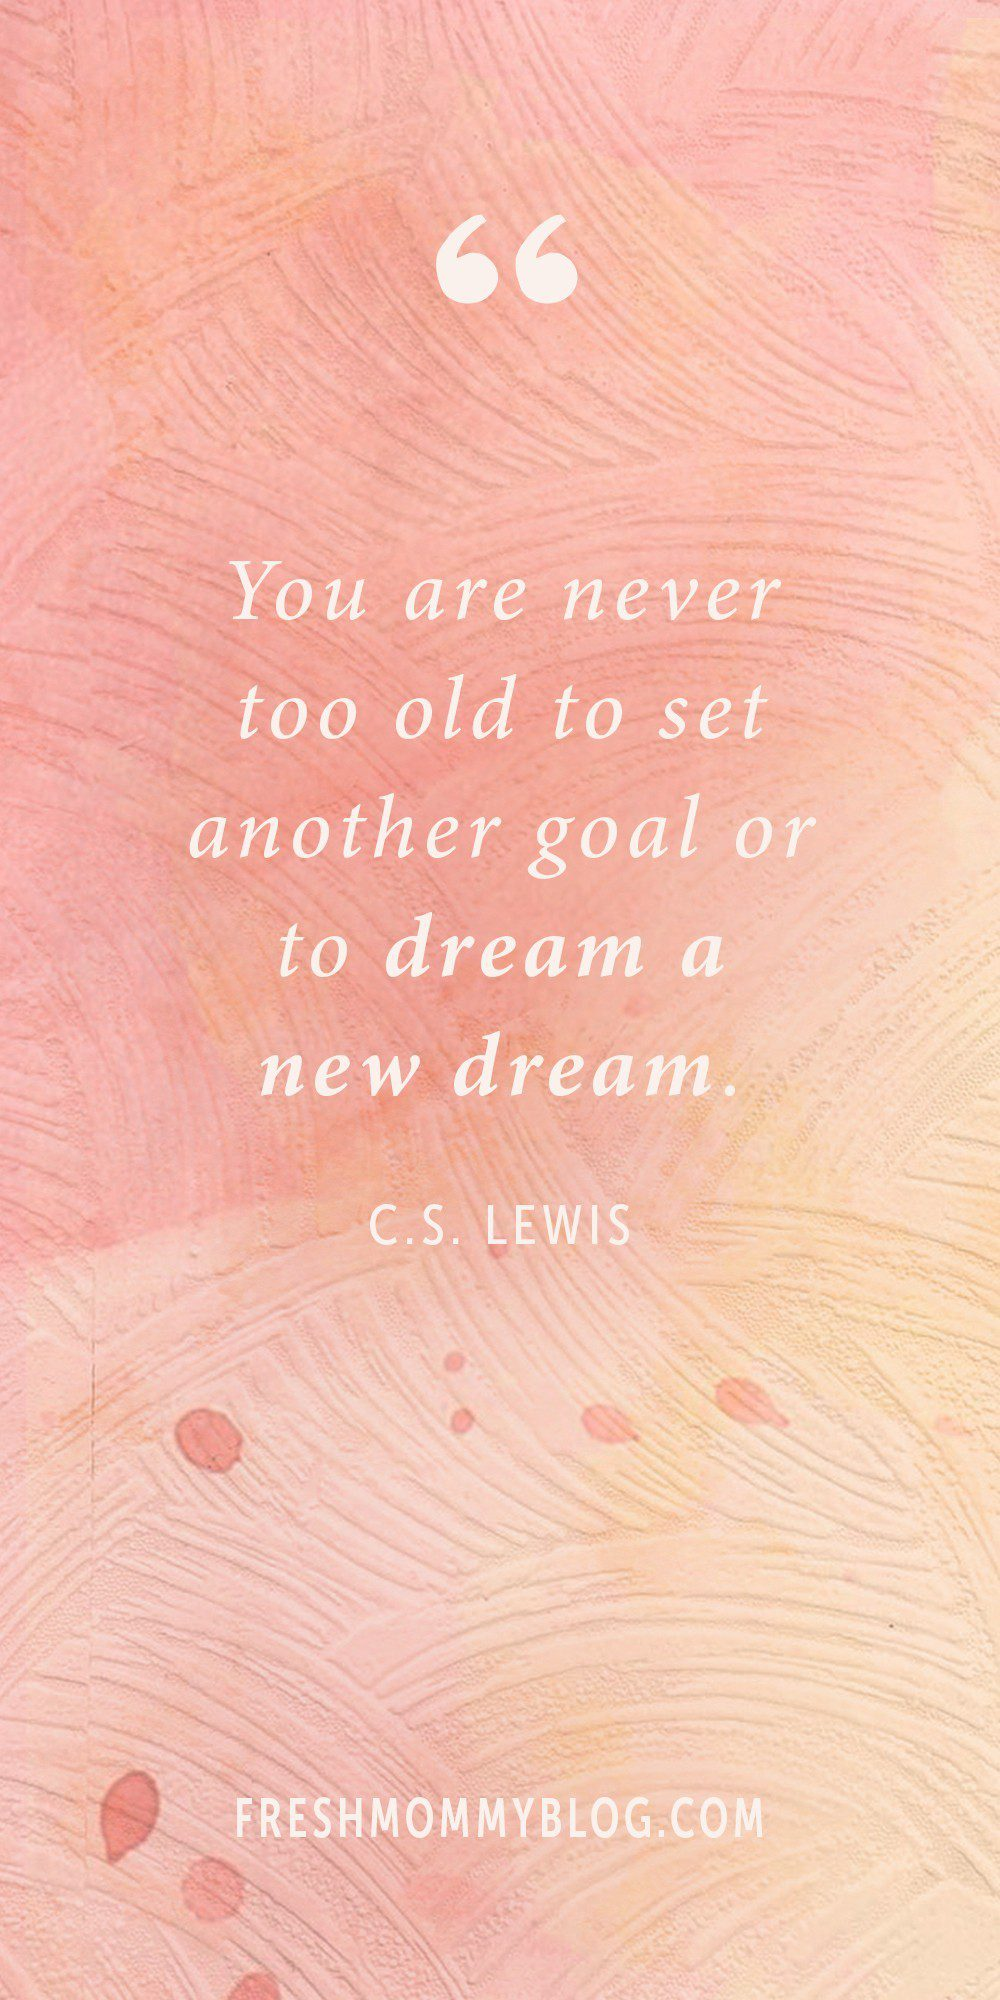 """You are never too old to set another goal or to dream a new dream."" C.S. Lewis - Inspiring quotes for a successful year and life! 